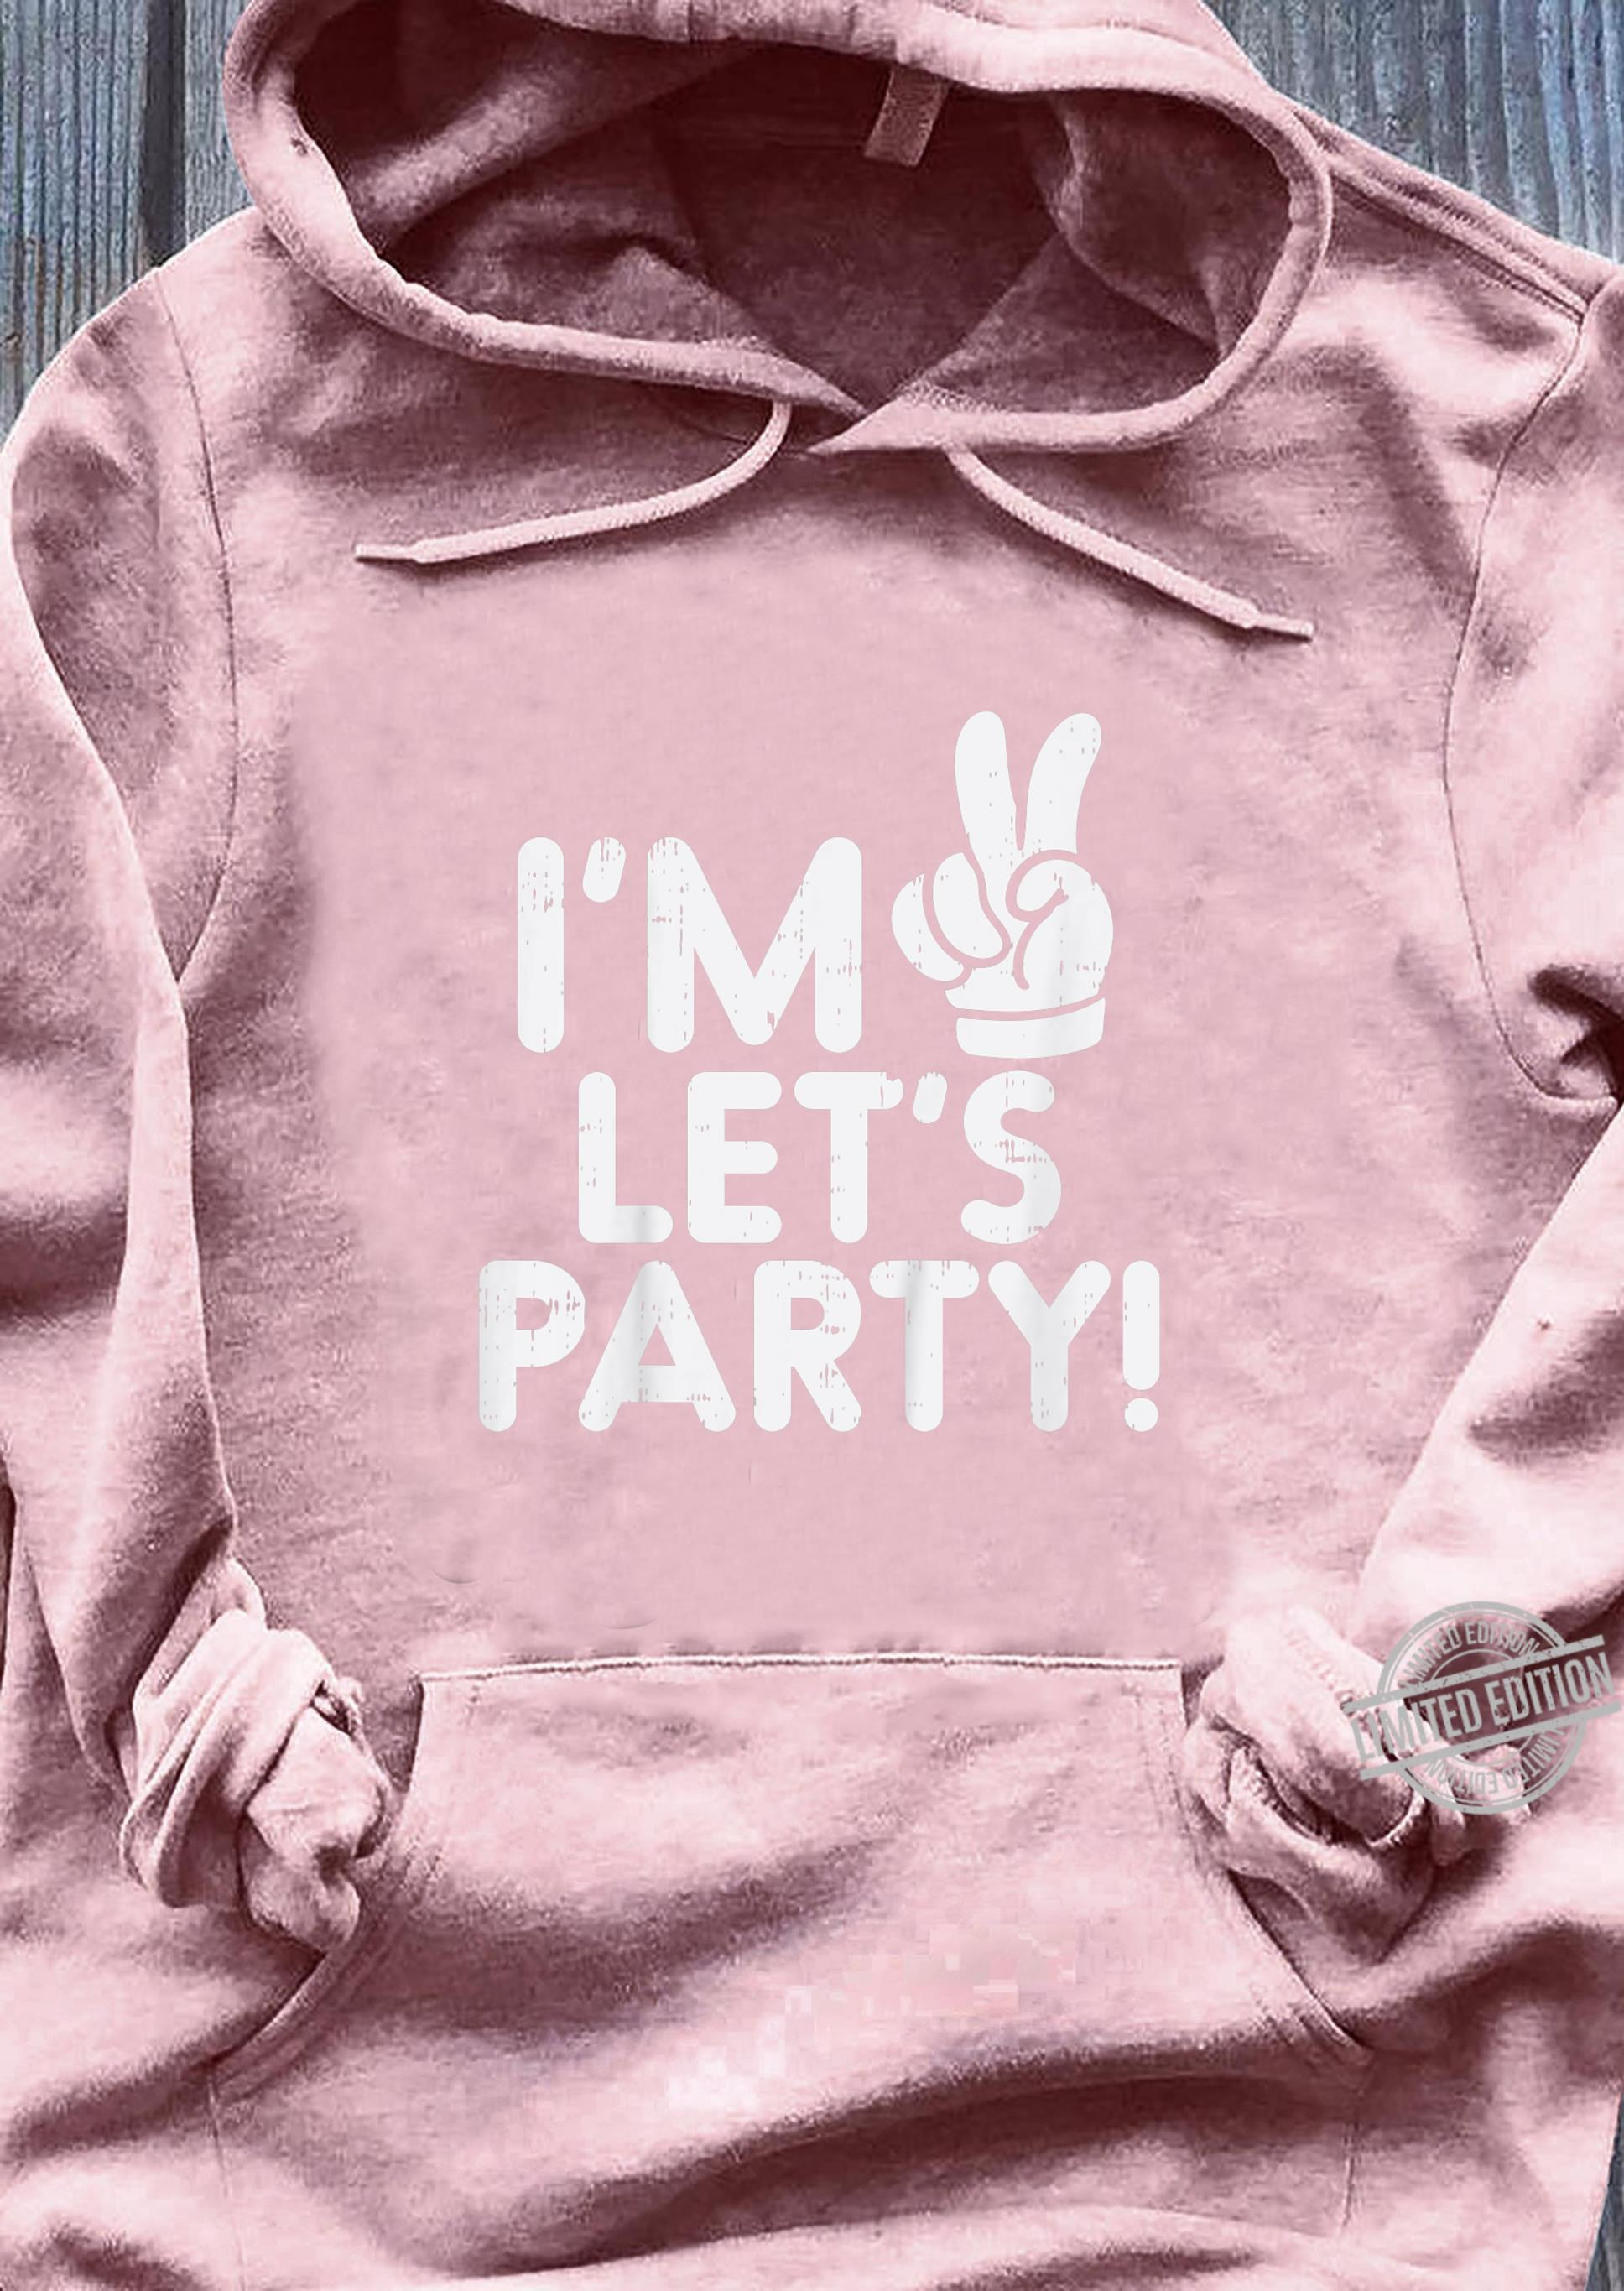 Kinder Im 2 Lets Party Second 2nd Birthday Party Boys Girls Shirt sweater